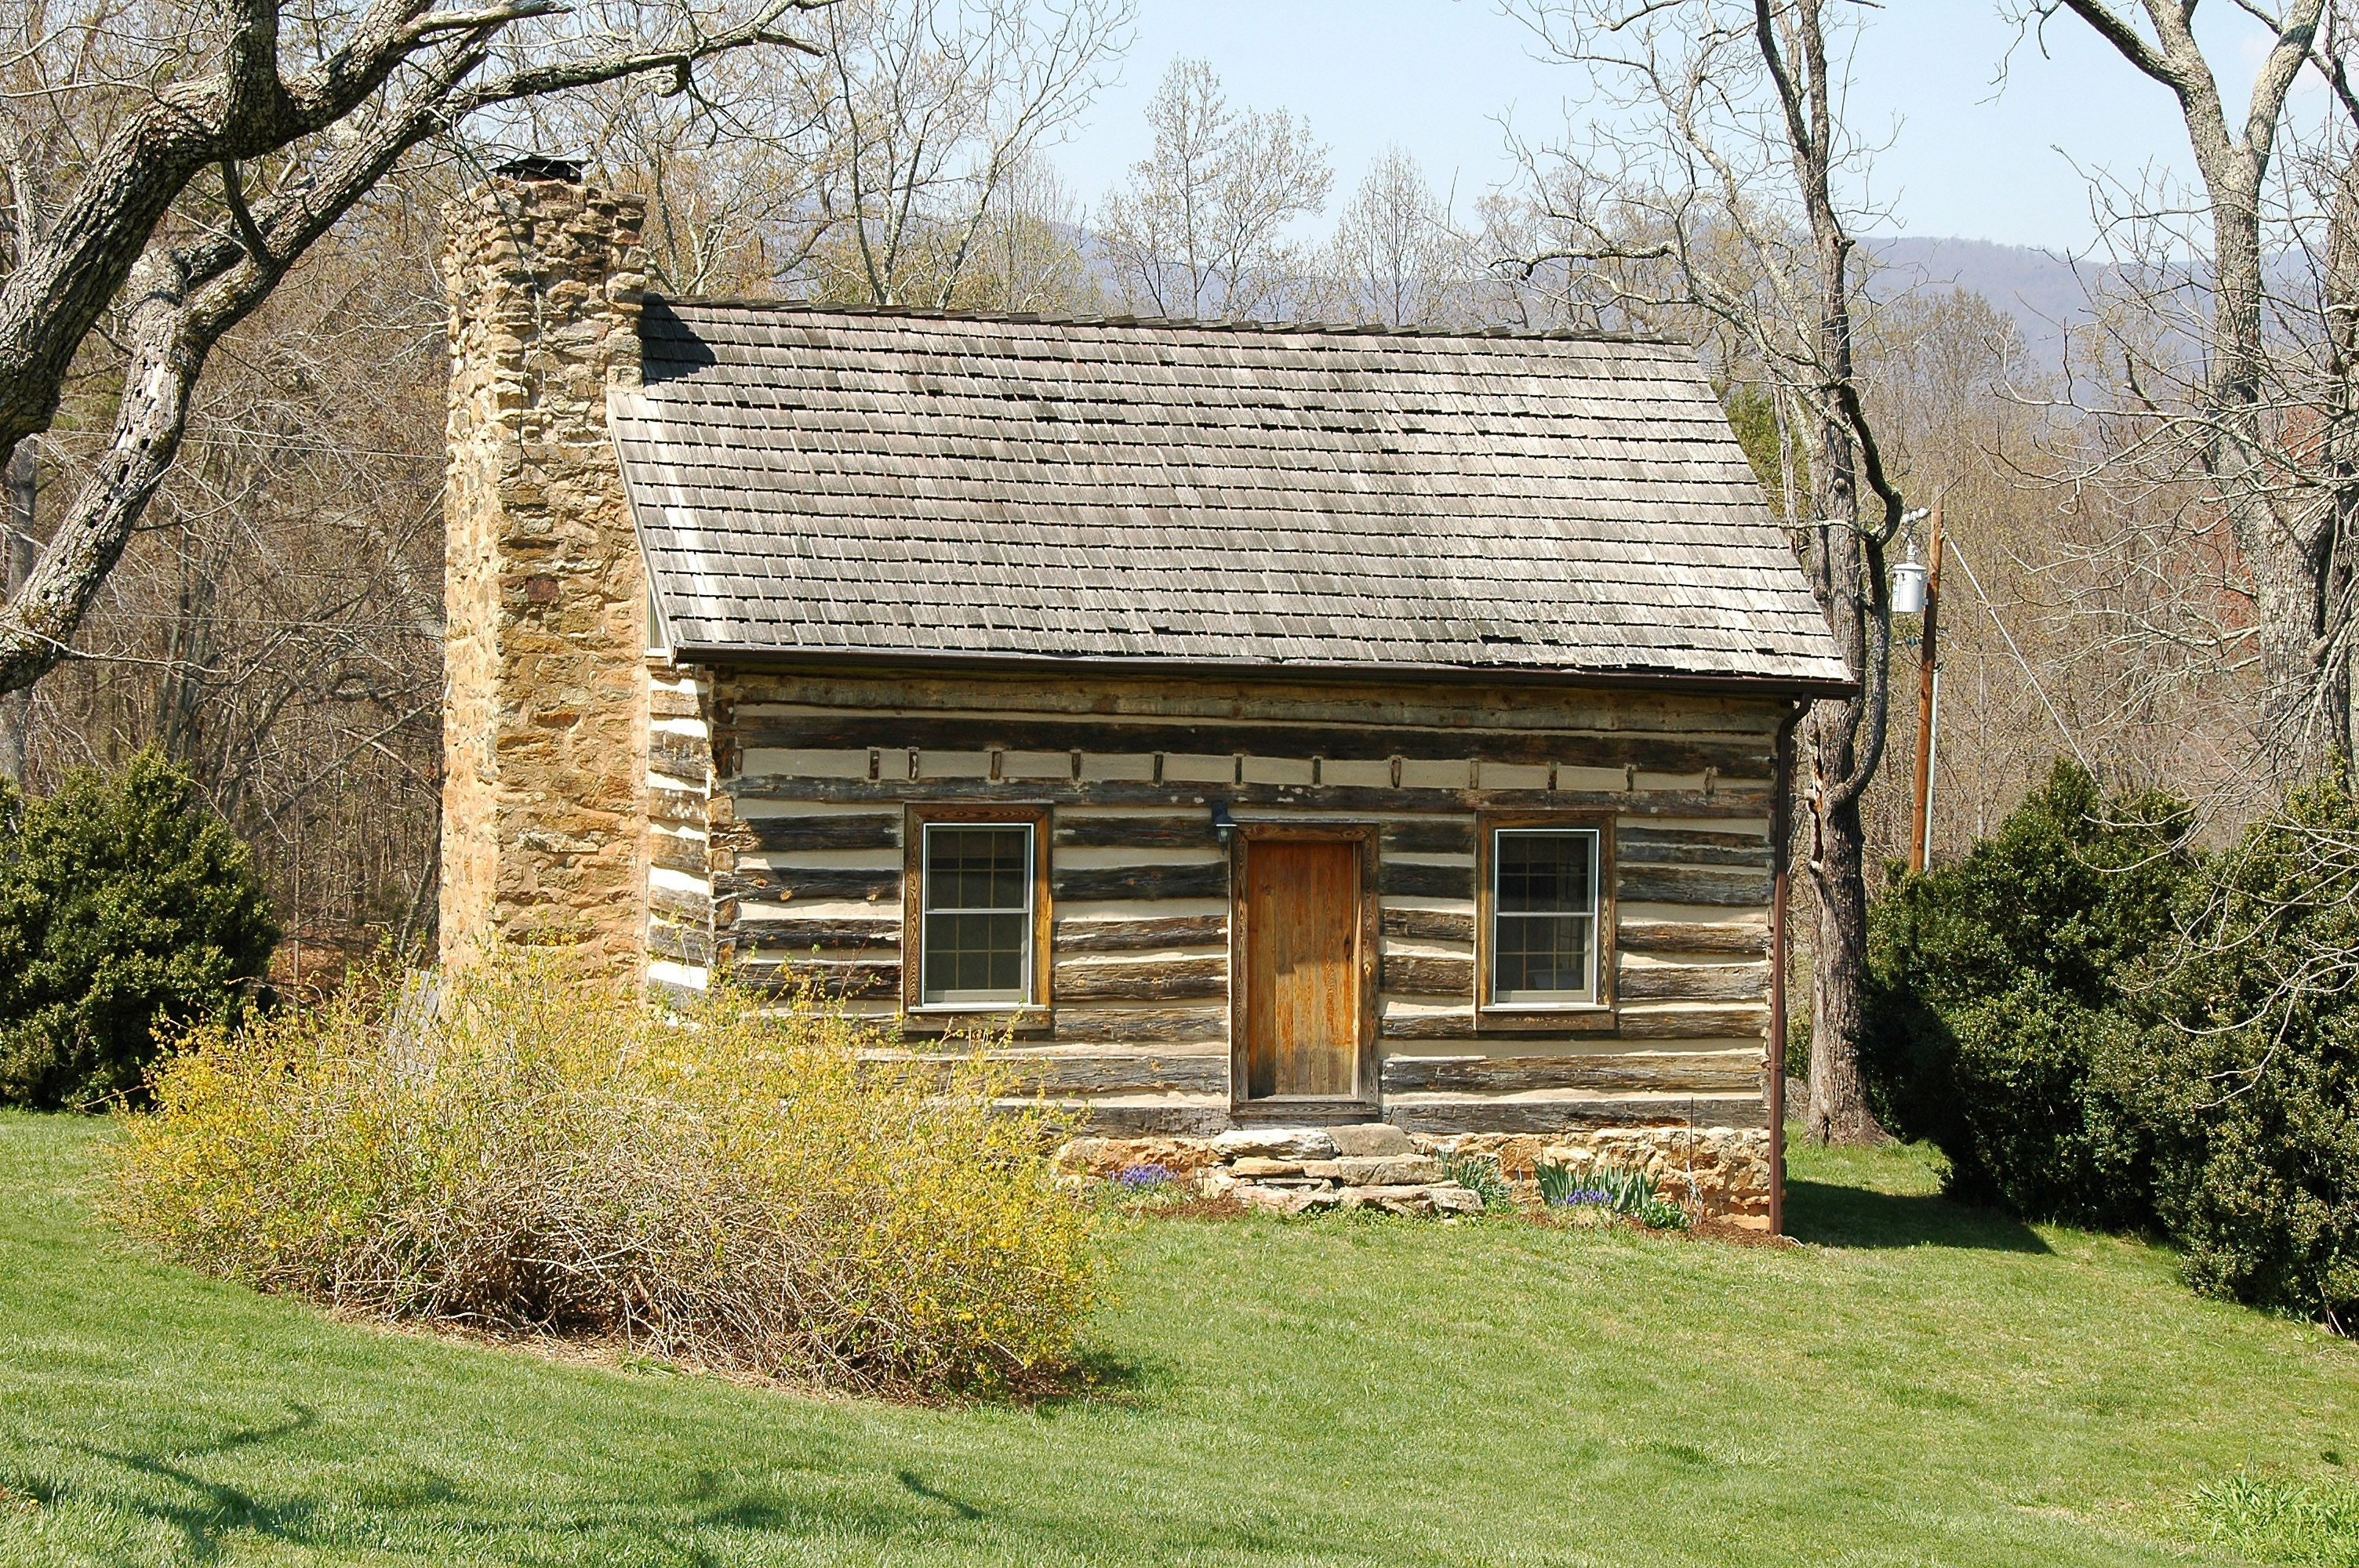 Log cabins treasure and use the carefully restored